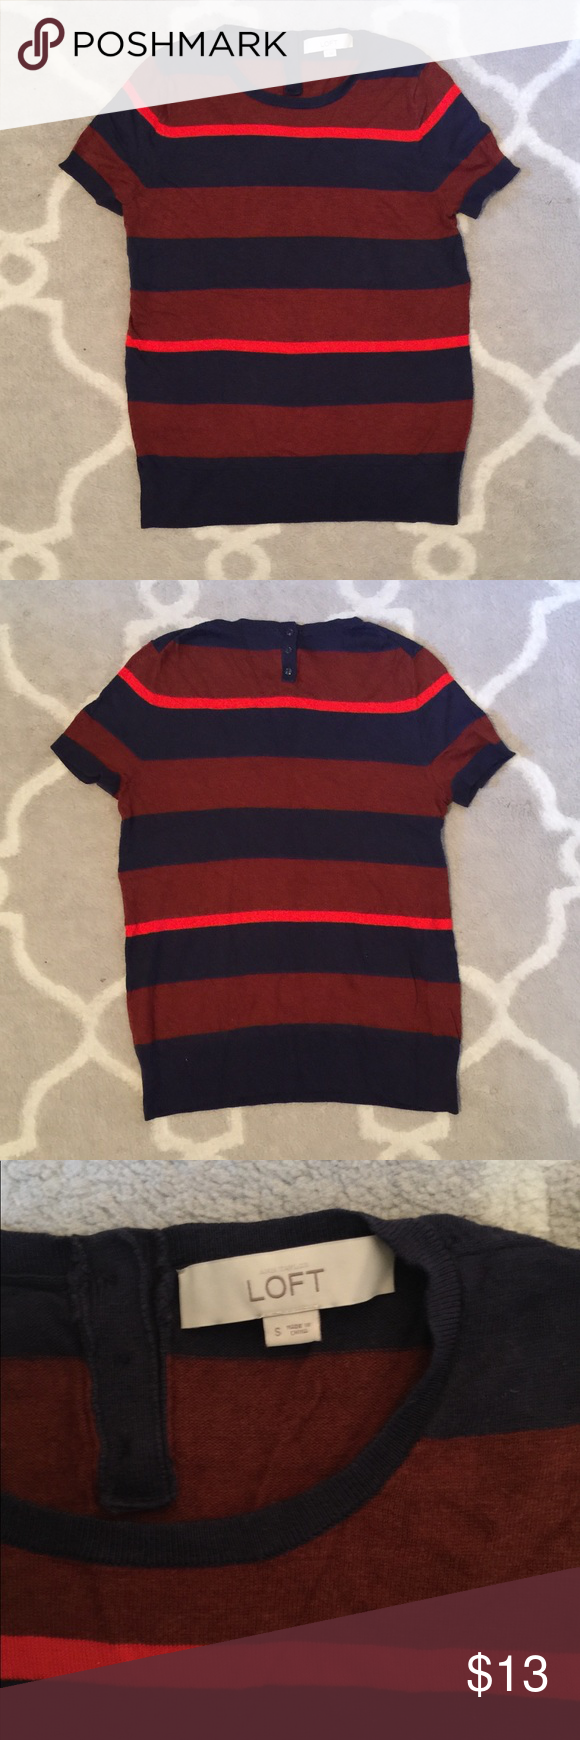 LOFT Striped Short Sleeved Sweater Comfortable and soft striped ...